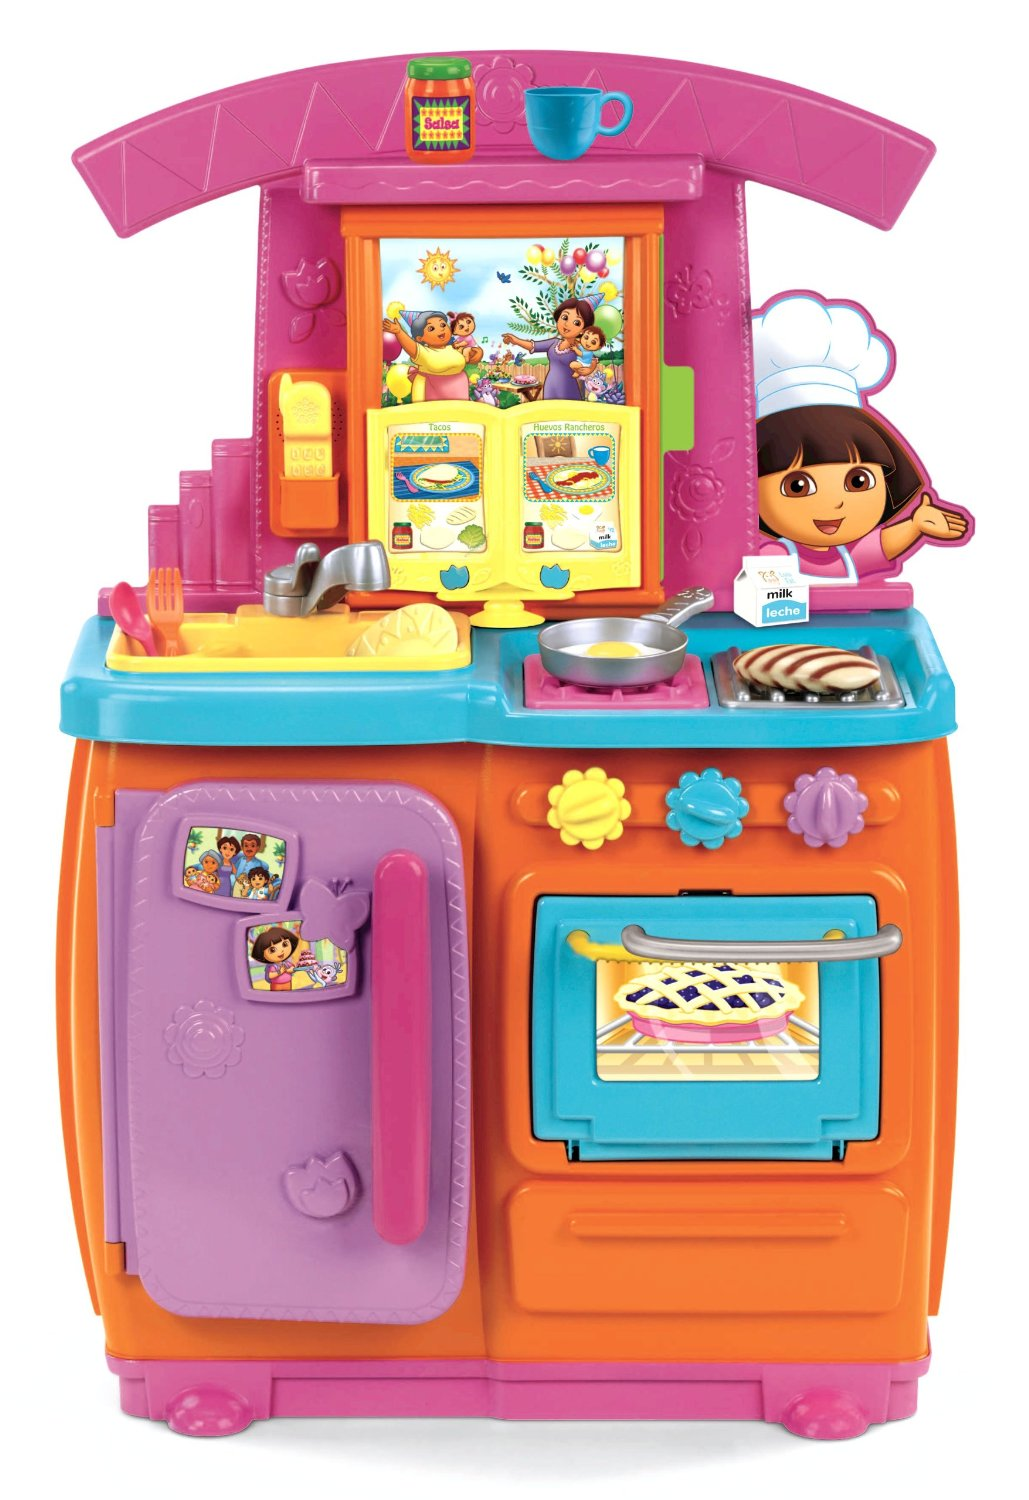 Do choi Ke bep FisherPrice Dora Fiesta Favorites Kitchen